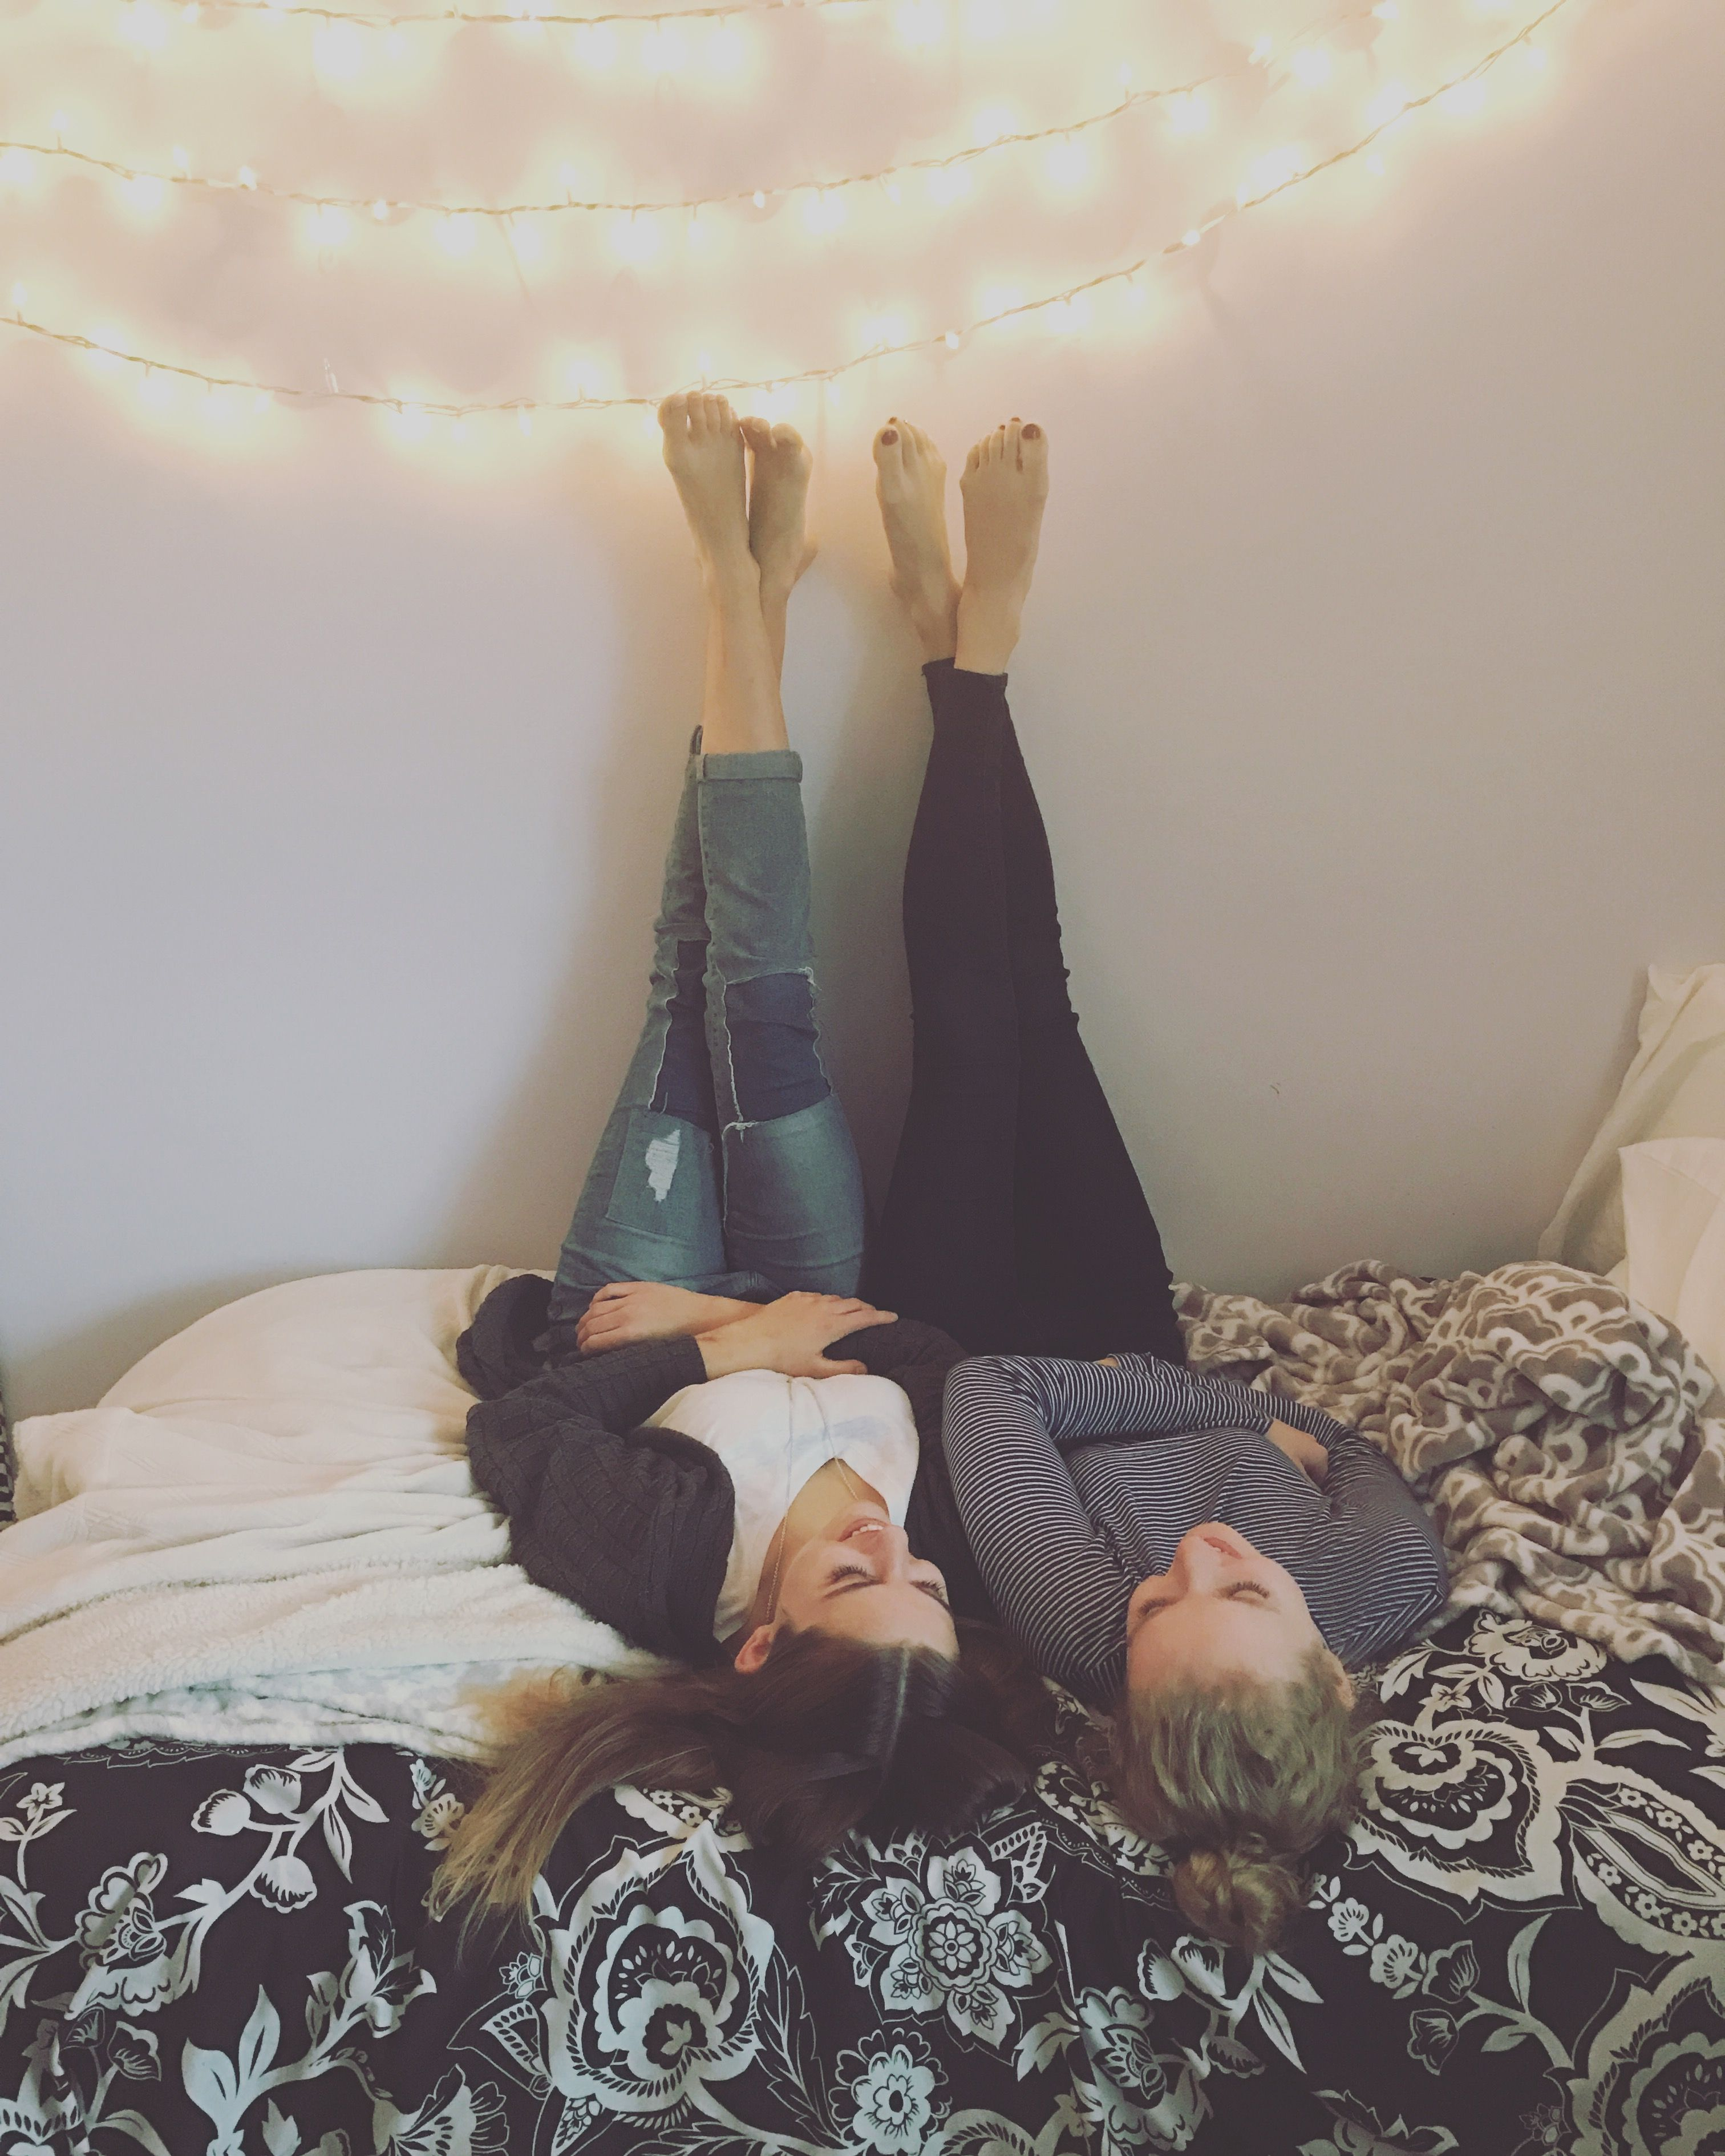 Just friends friends who like to do this tumblr